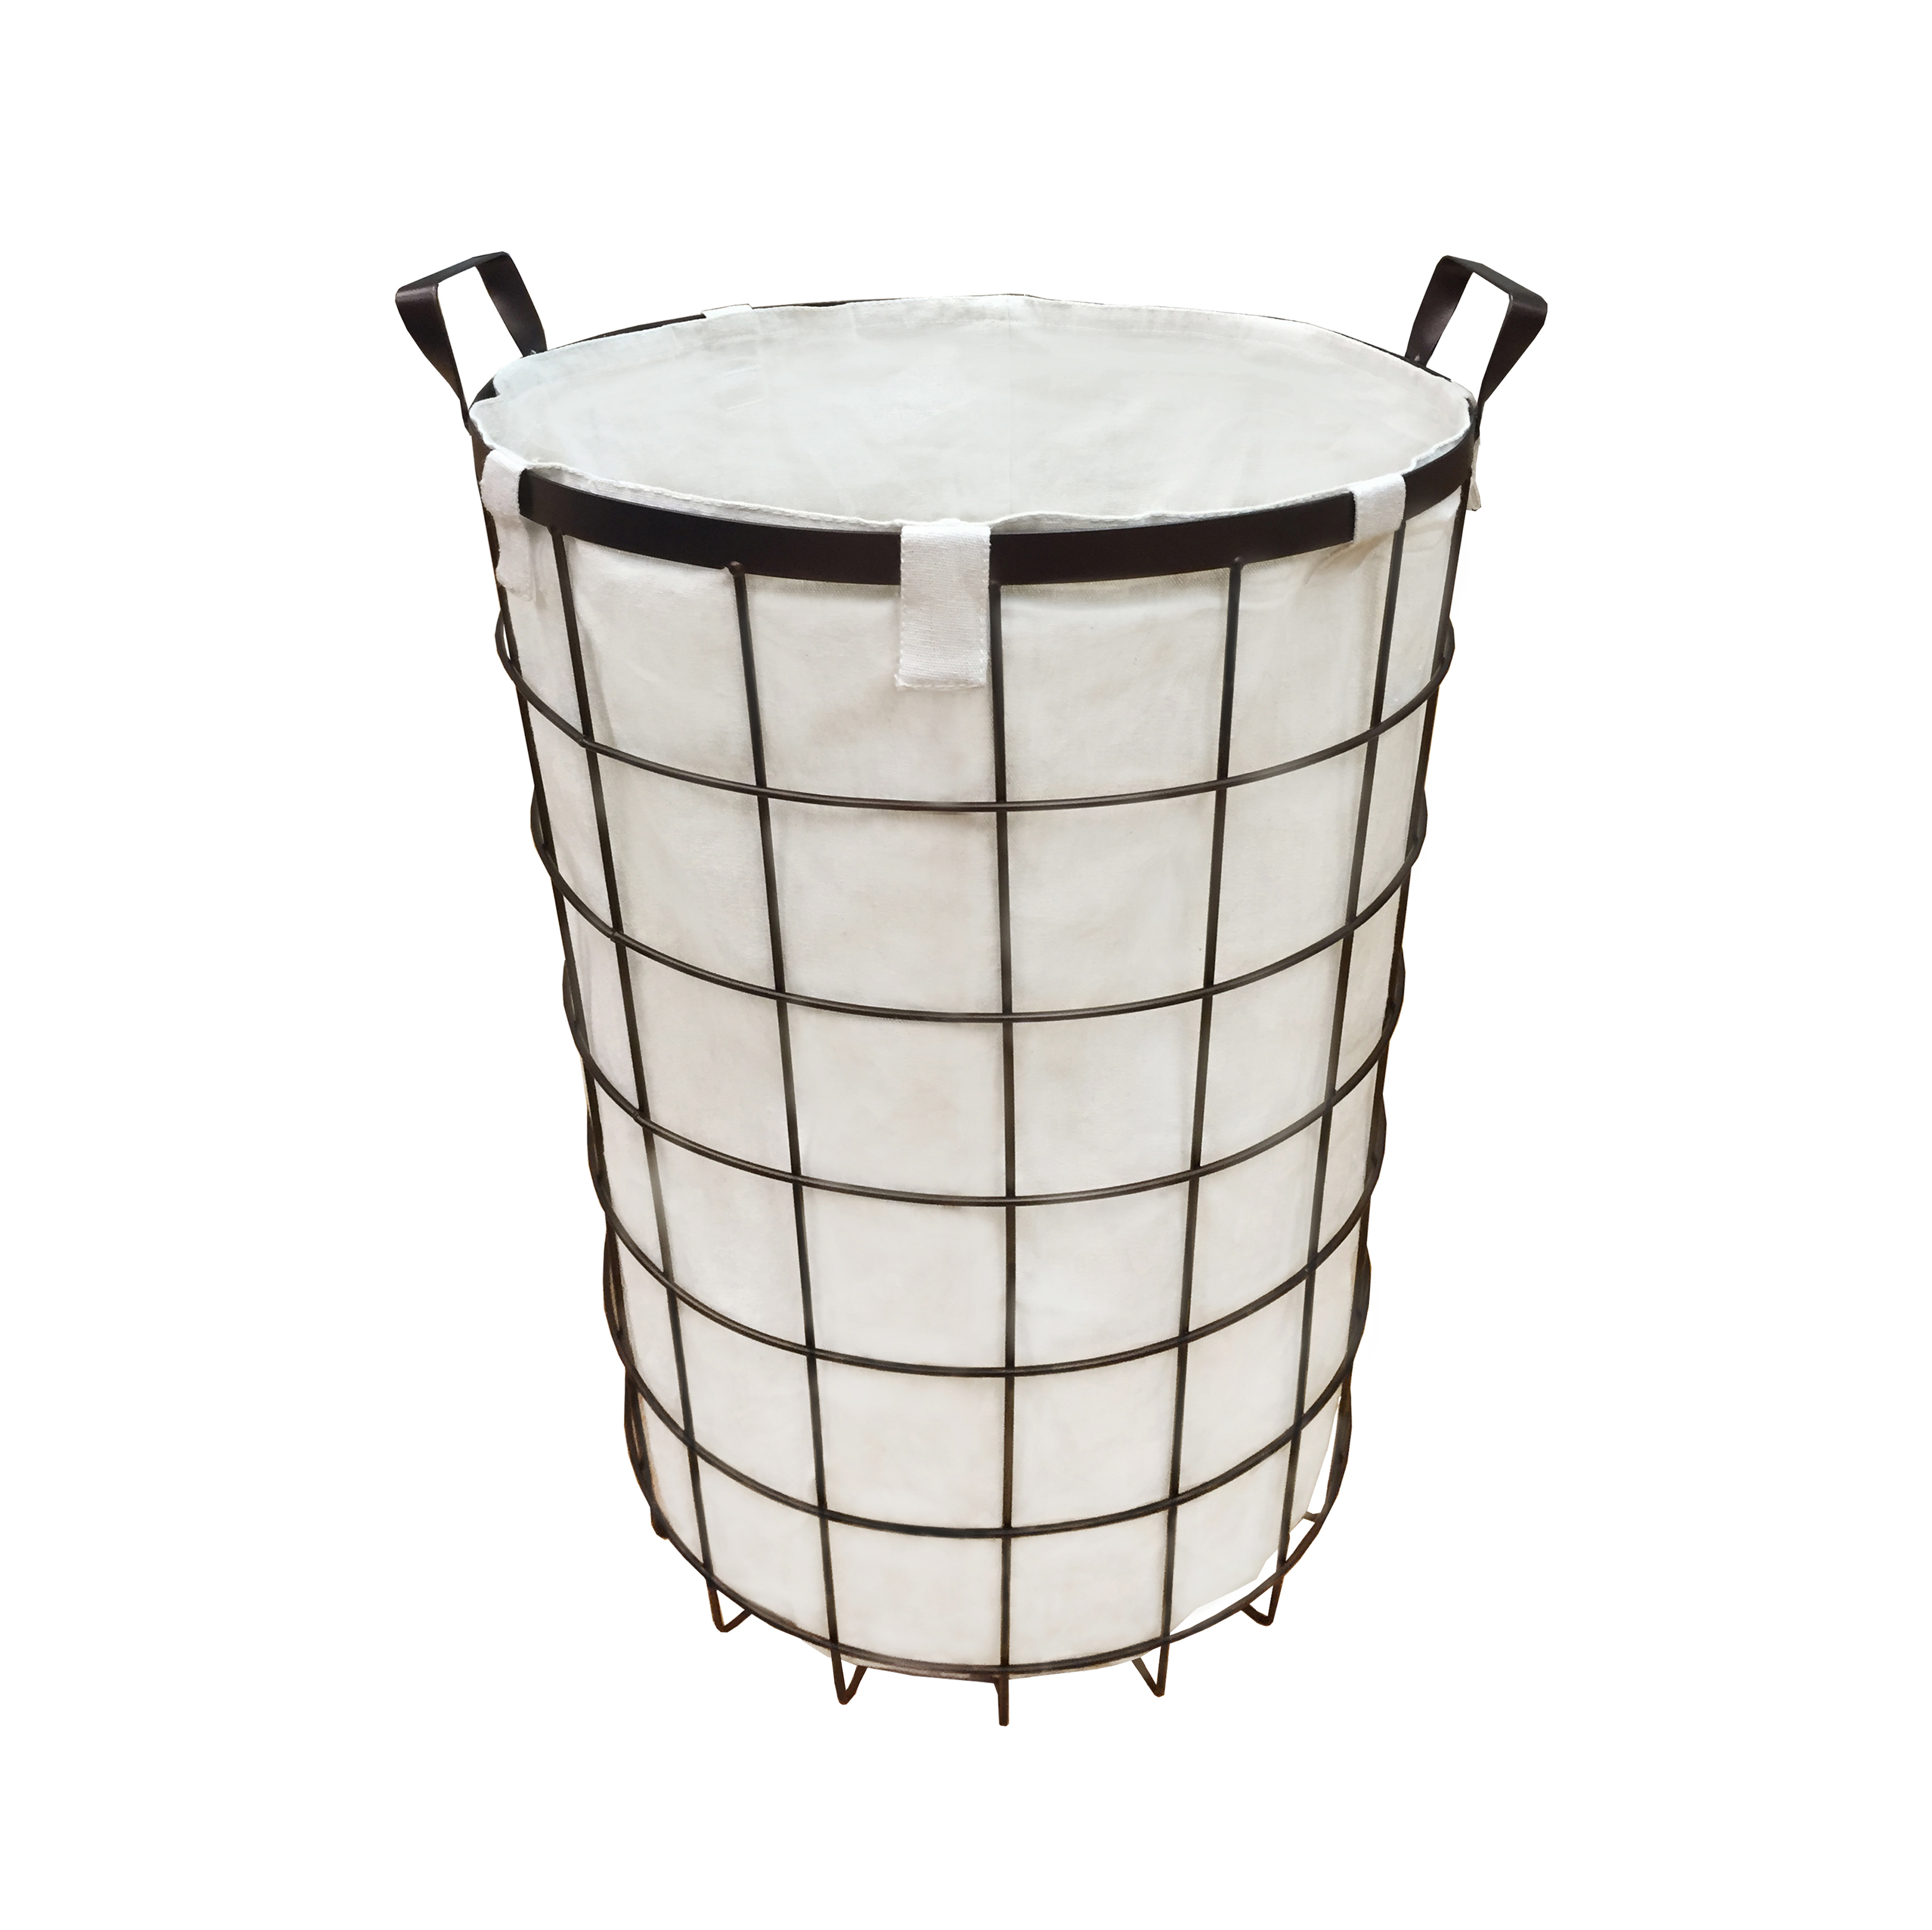 Chrome Laundry Basket Canvas Laundry Hamper Kmart